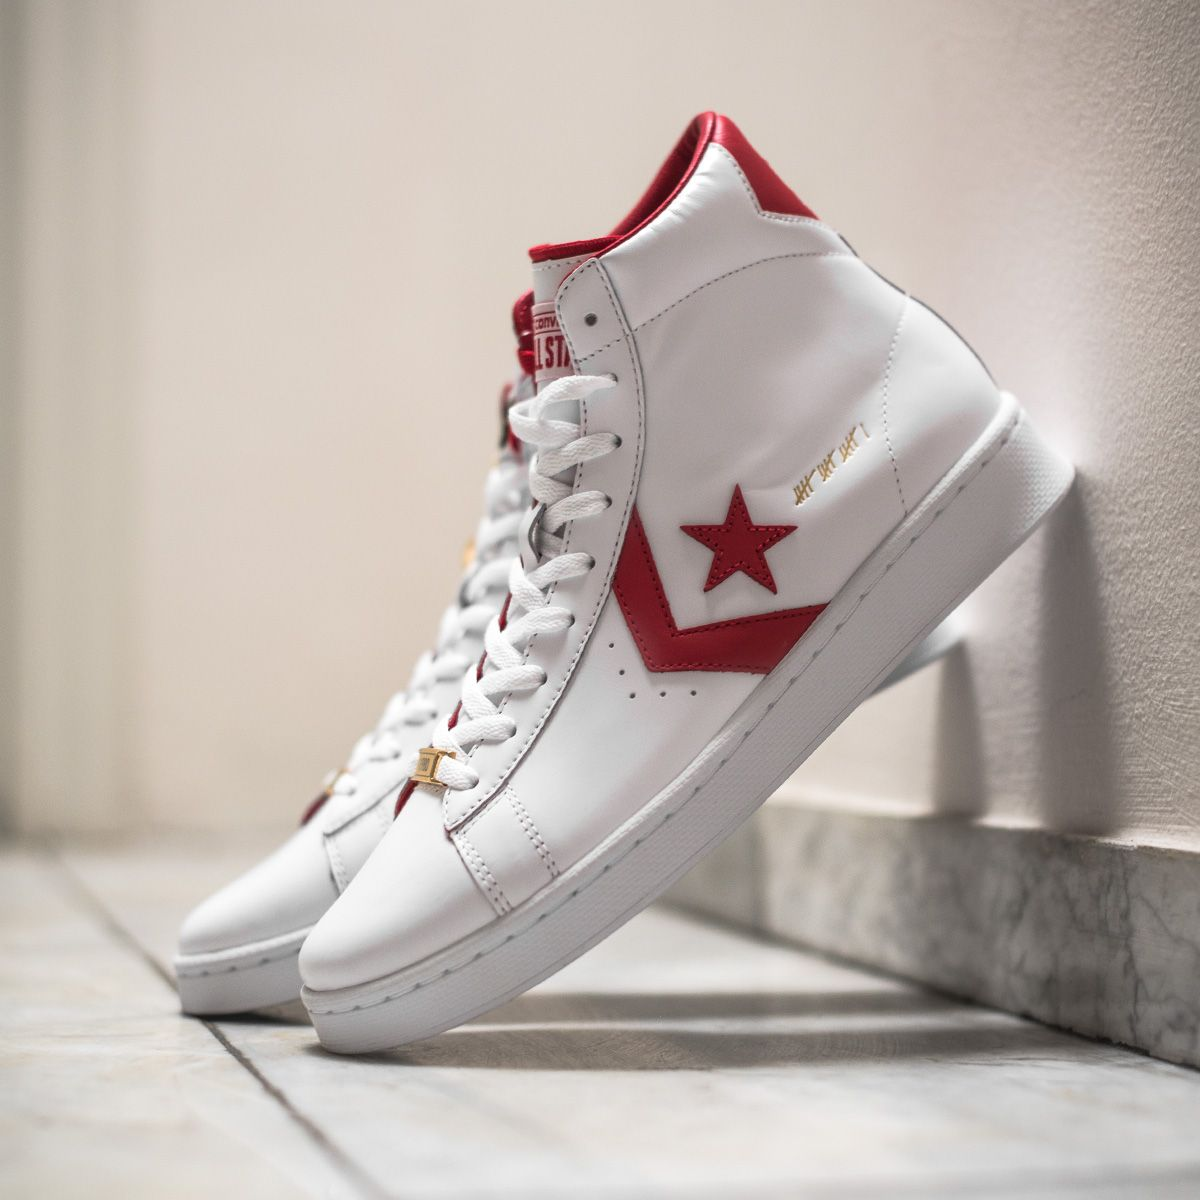 The Converse Pro Leather MID - CT16 is part of the highly exclusive CT-16 c879275e6